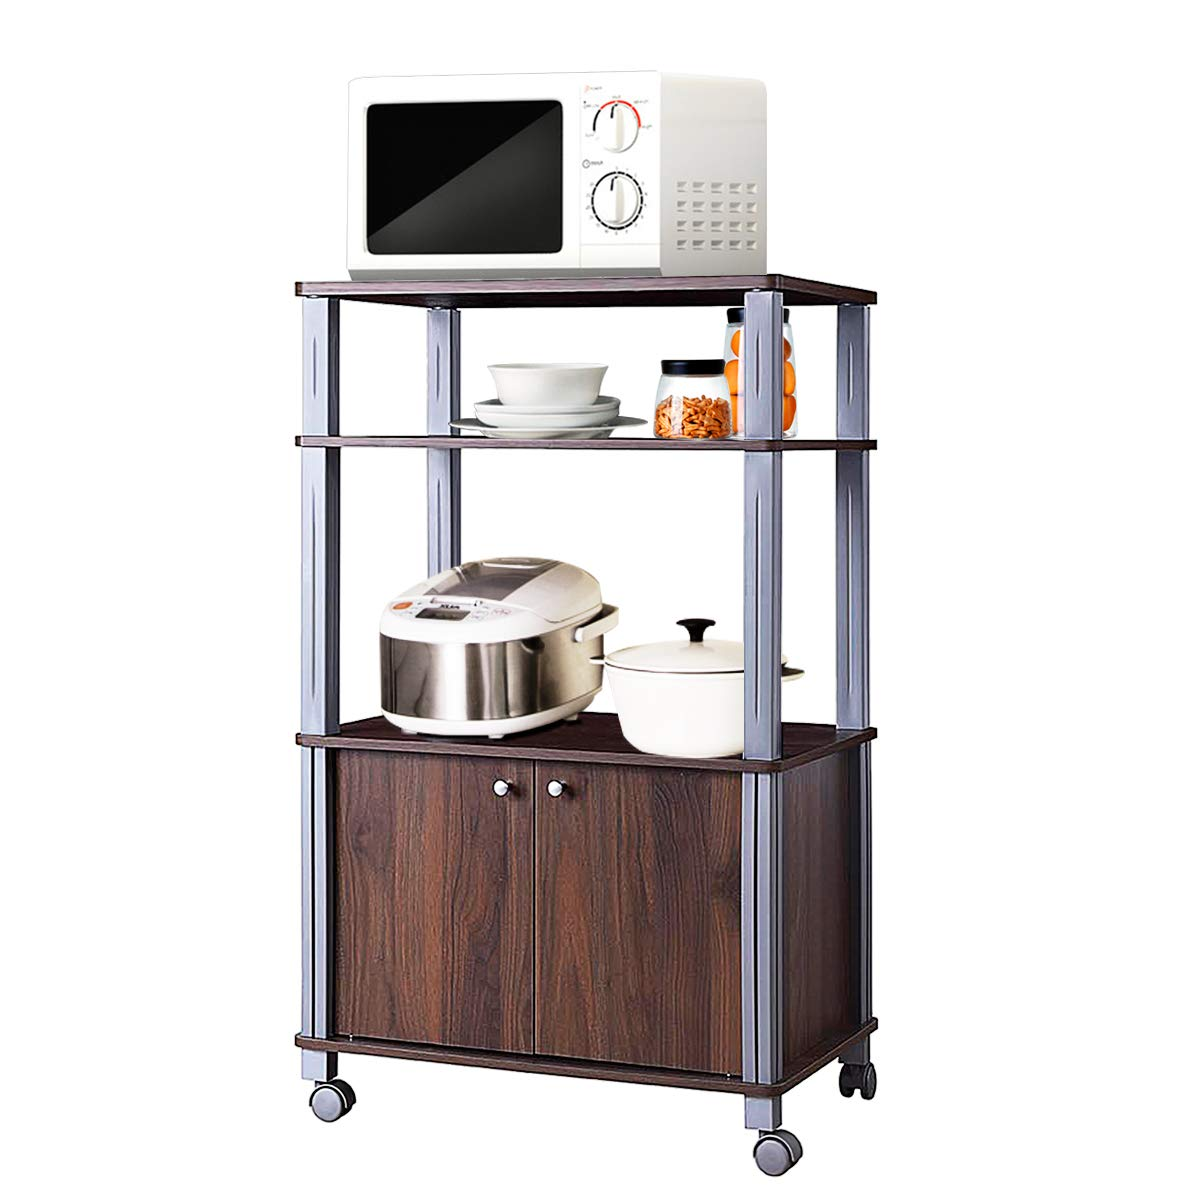 Giantex Rolling Kitchen Baker's Rack Microwave Oven Stand Utility Shelf on Wheels Storage Cart Spice Workstation Organizer with 2-Tier Shelf and Cabinet, Kitchen or Dining Room Furnitu (Walnut)